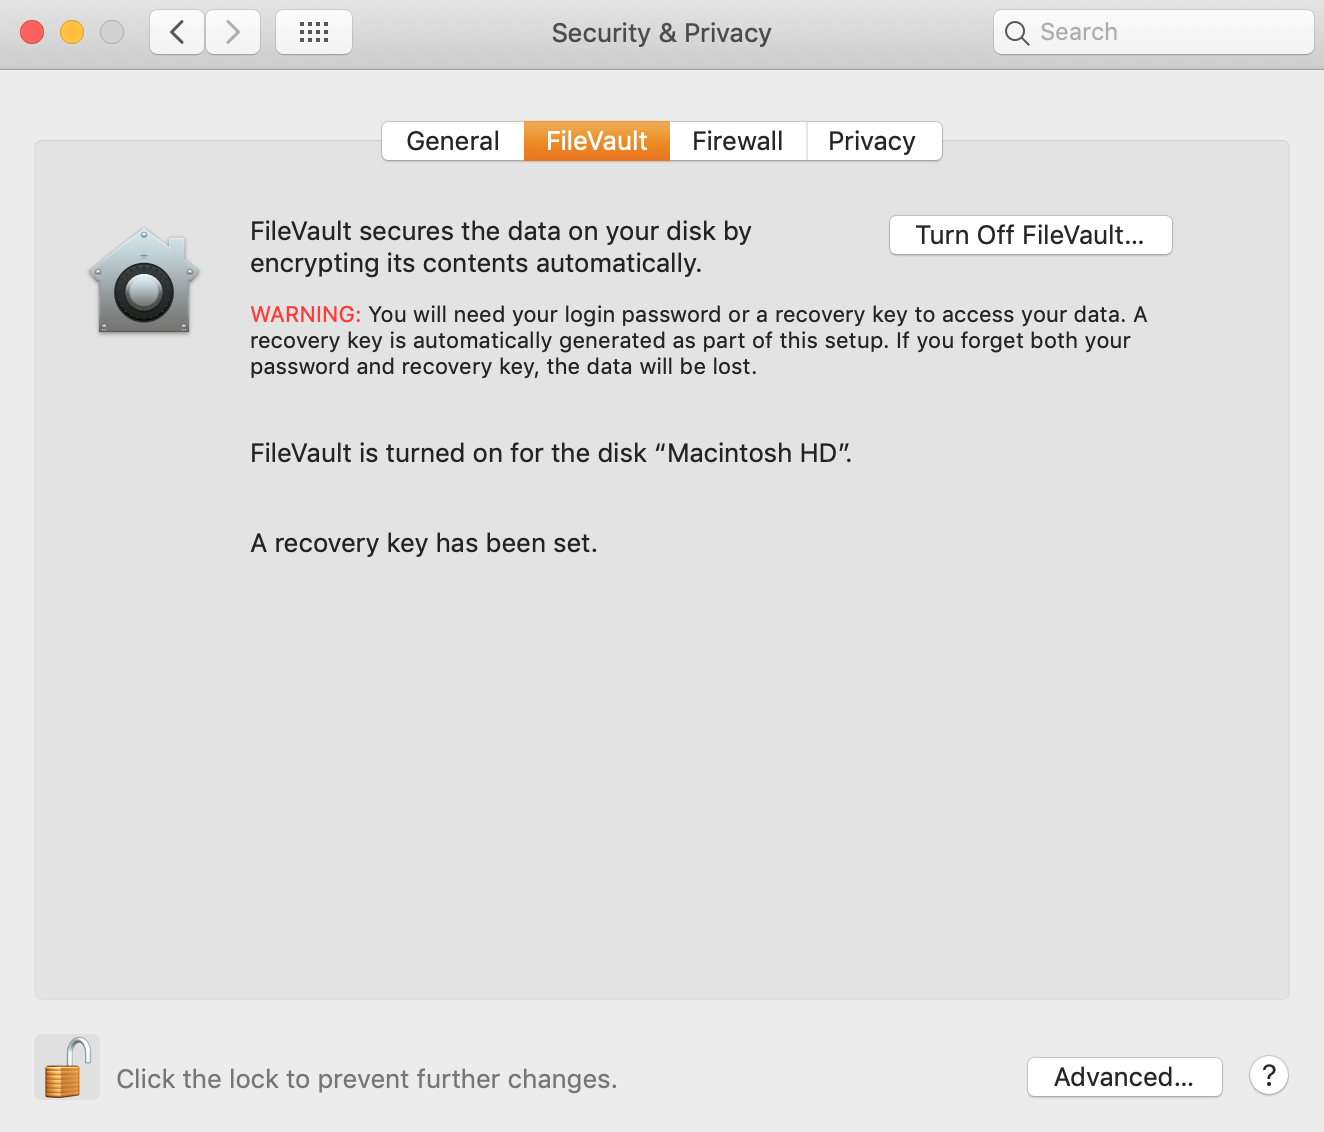 filevault turned on in security and privacy settings